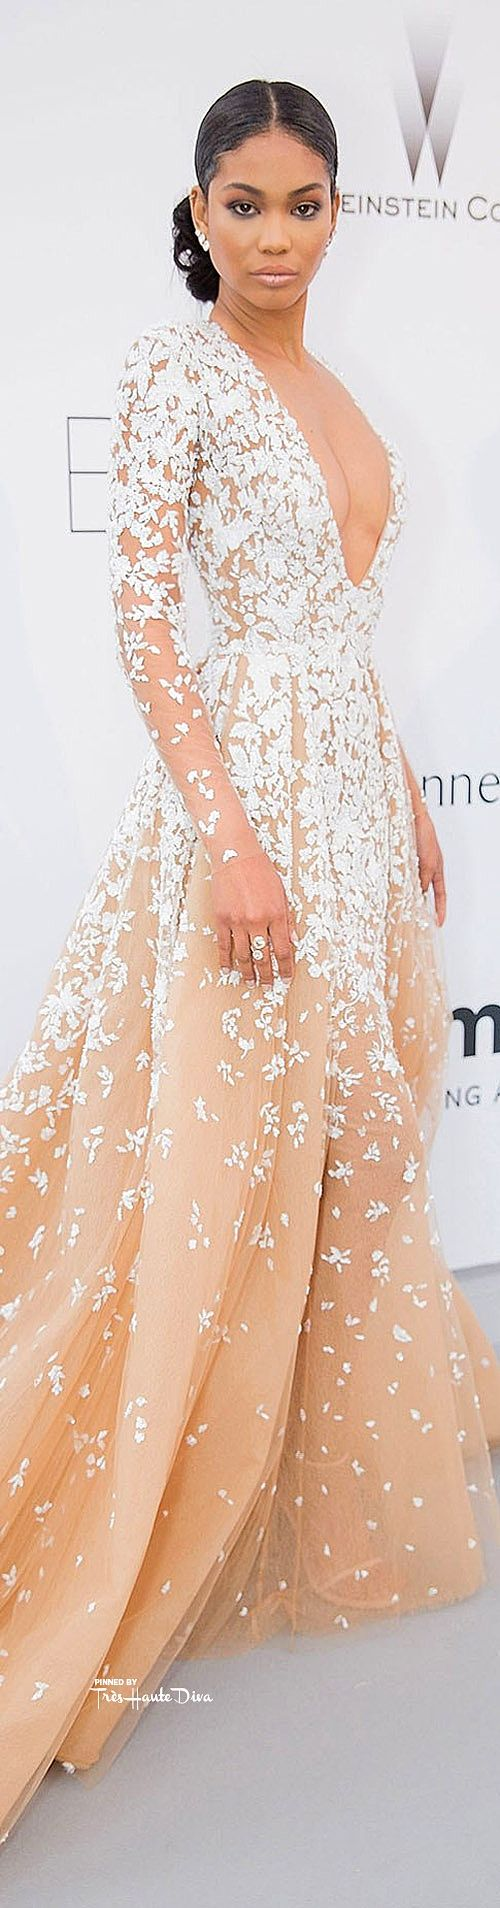 #Chanel #Iman in Zuhair Murad Couture ♔ Cannes Film Festival 2015 Red Carpet ♔ Très Haute Diva ♔